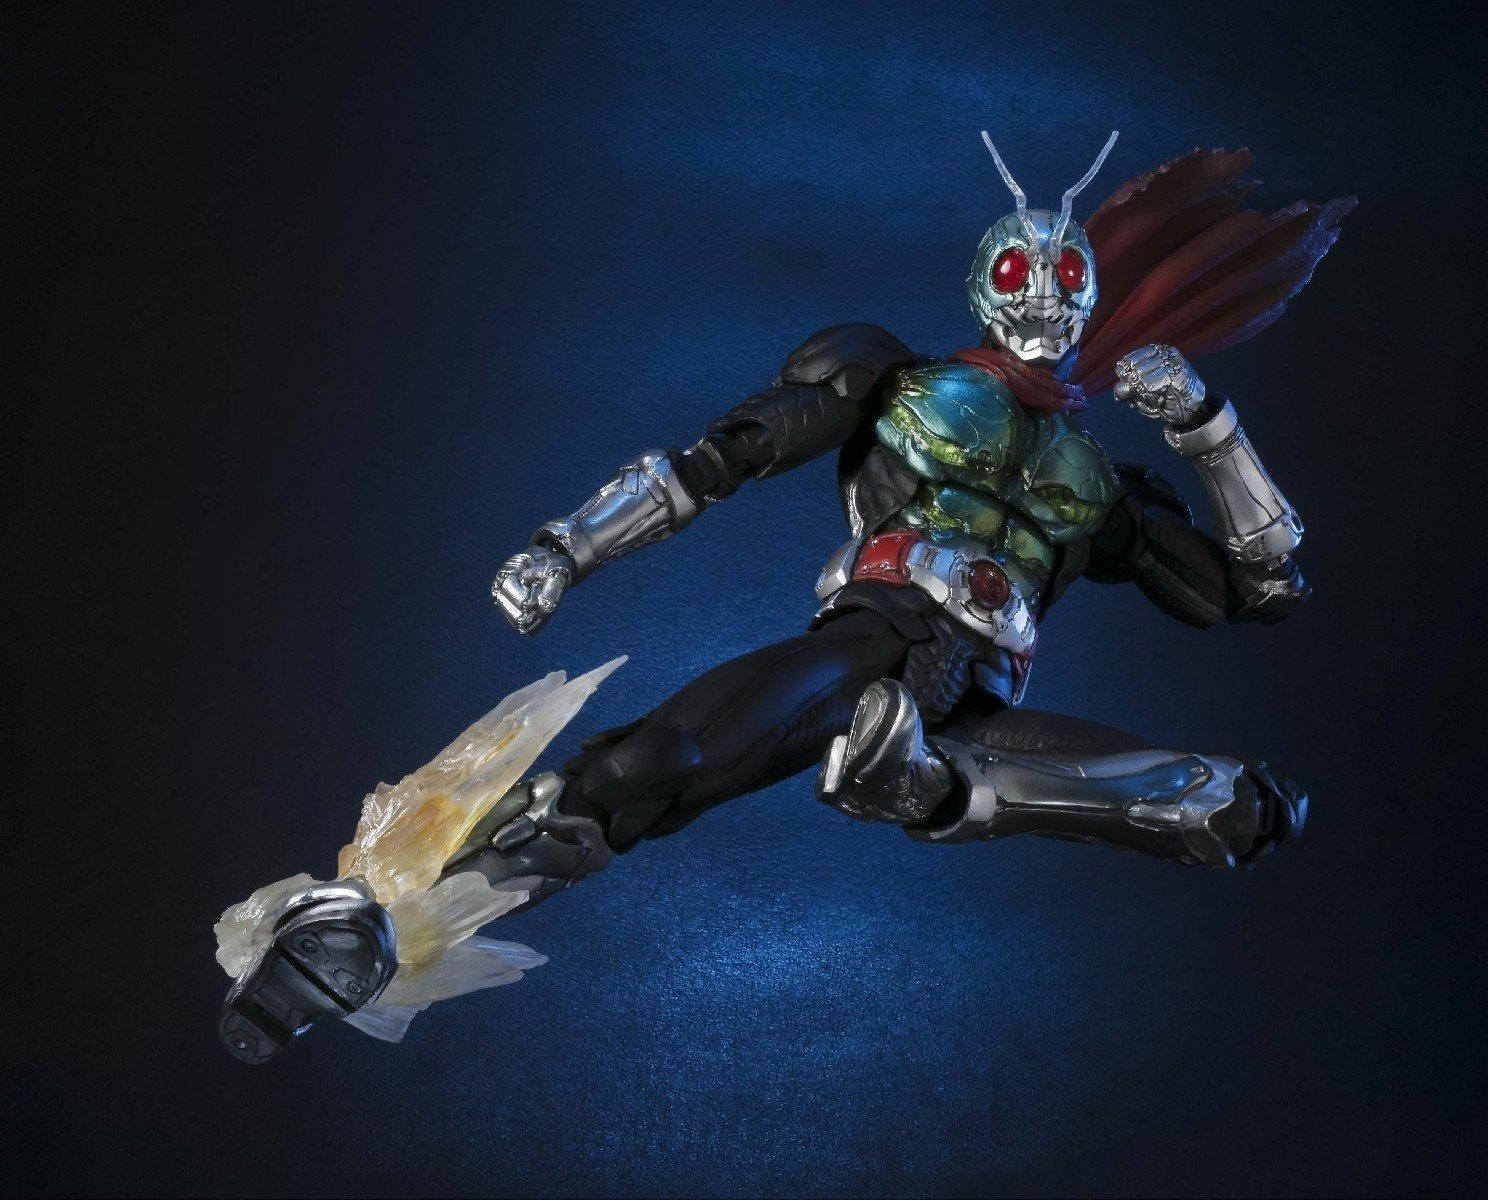 S.I.C. Masked Masked Masked Kamen Rider NEW 1 Action Figure BANDAI TAMASHII NATIONS from Japan 3be222